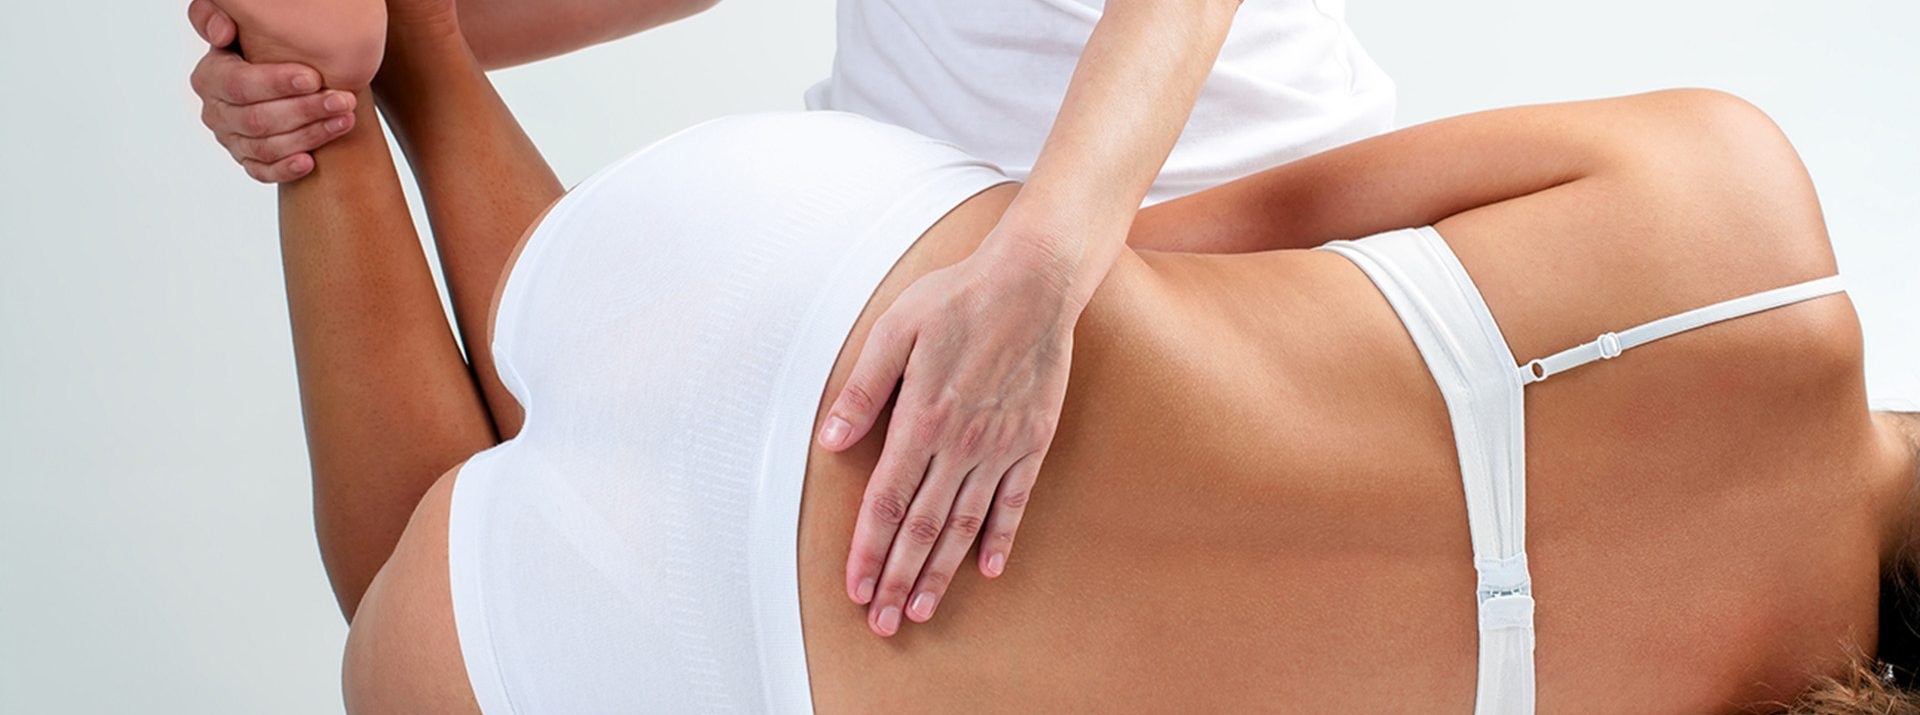 Your local osteopaths in Guildford and Godalming Surrey